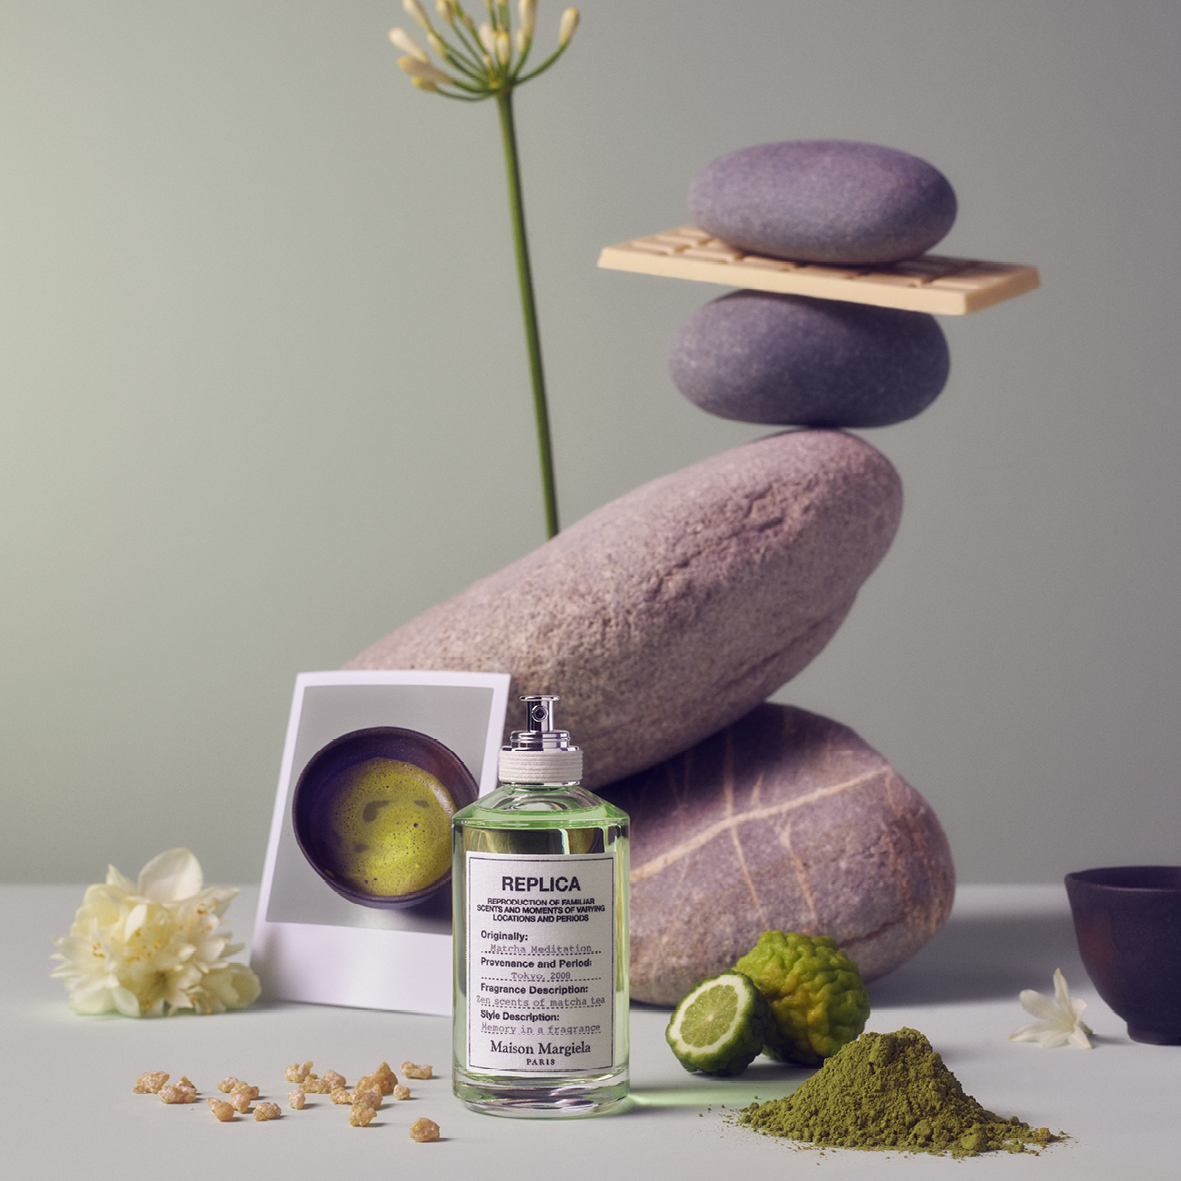 REPLICA Matcha Meditation product media